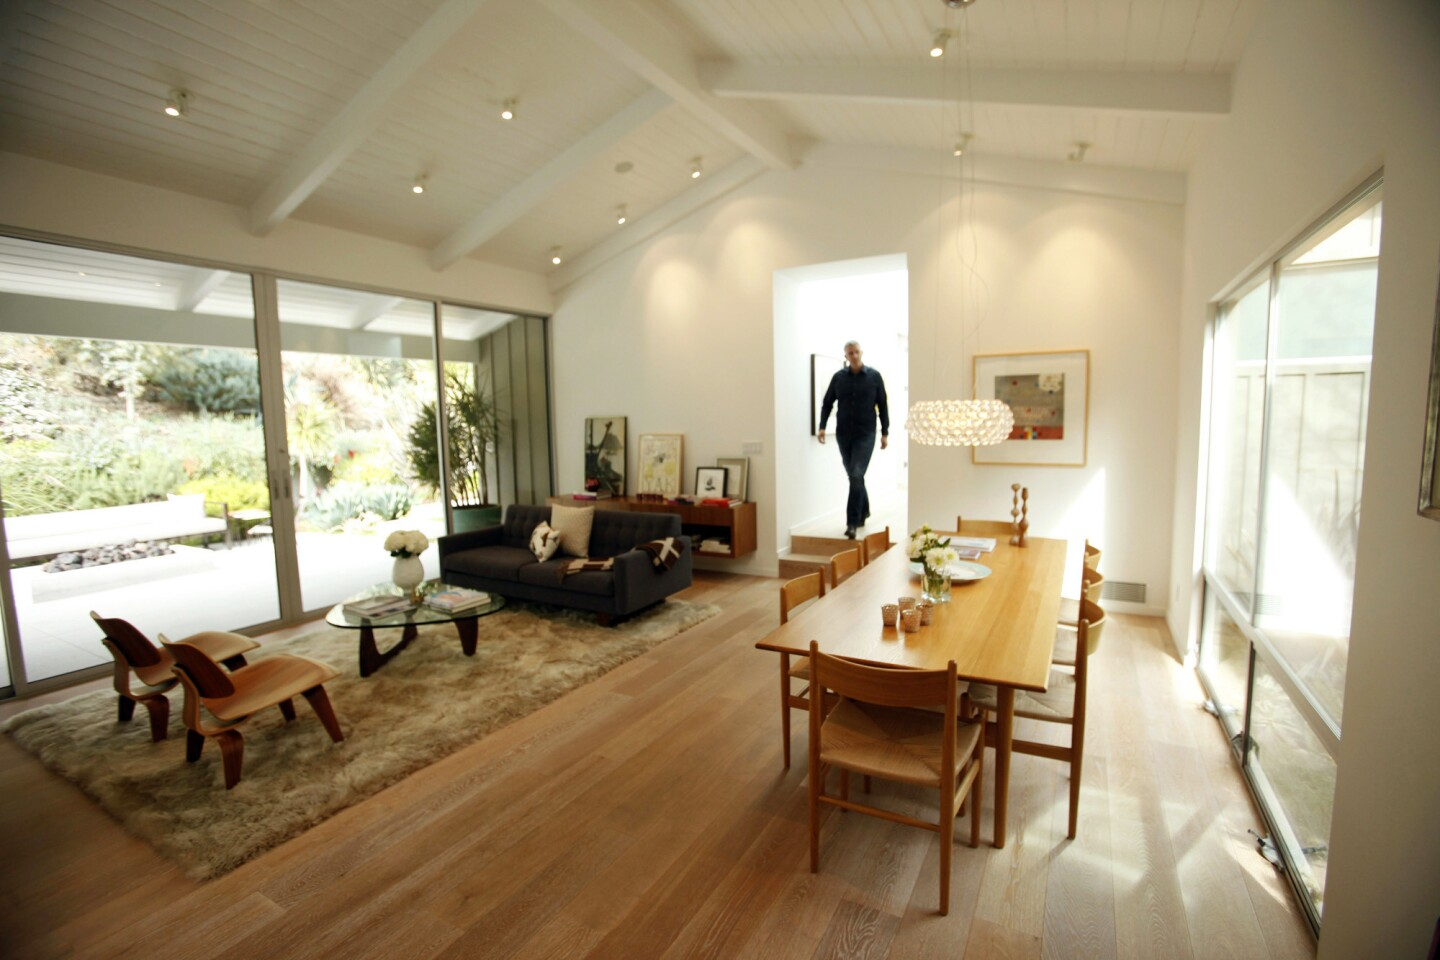 Architect David Montalba of Montalba Architects in Santa Monica walks through the home of Betsy Everitt and Christopher Schilling in Brentwood, a ranch house that he redesigned as a clean, modern indoor-outdoor retreat.